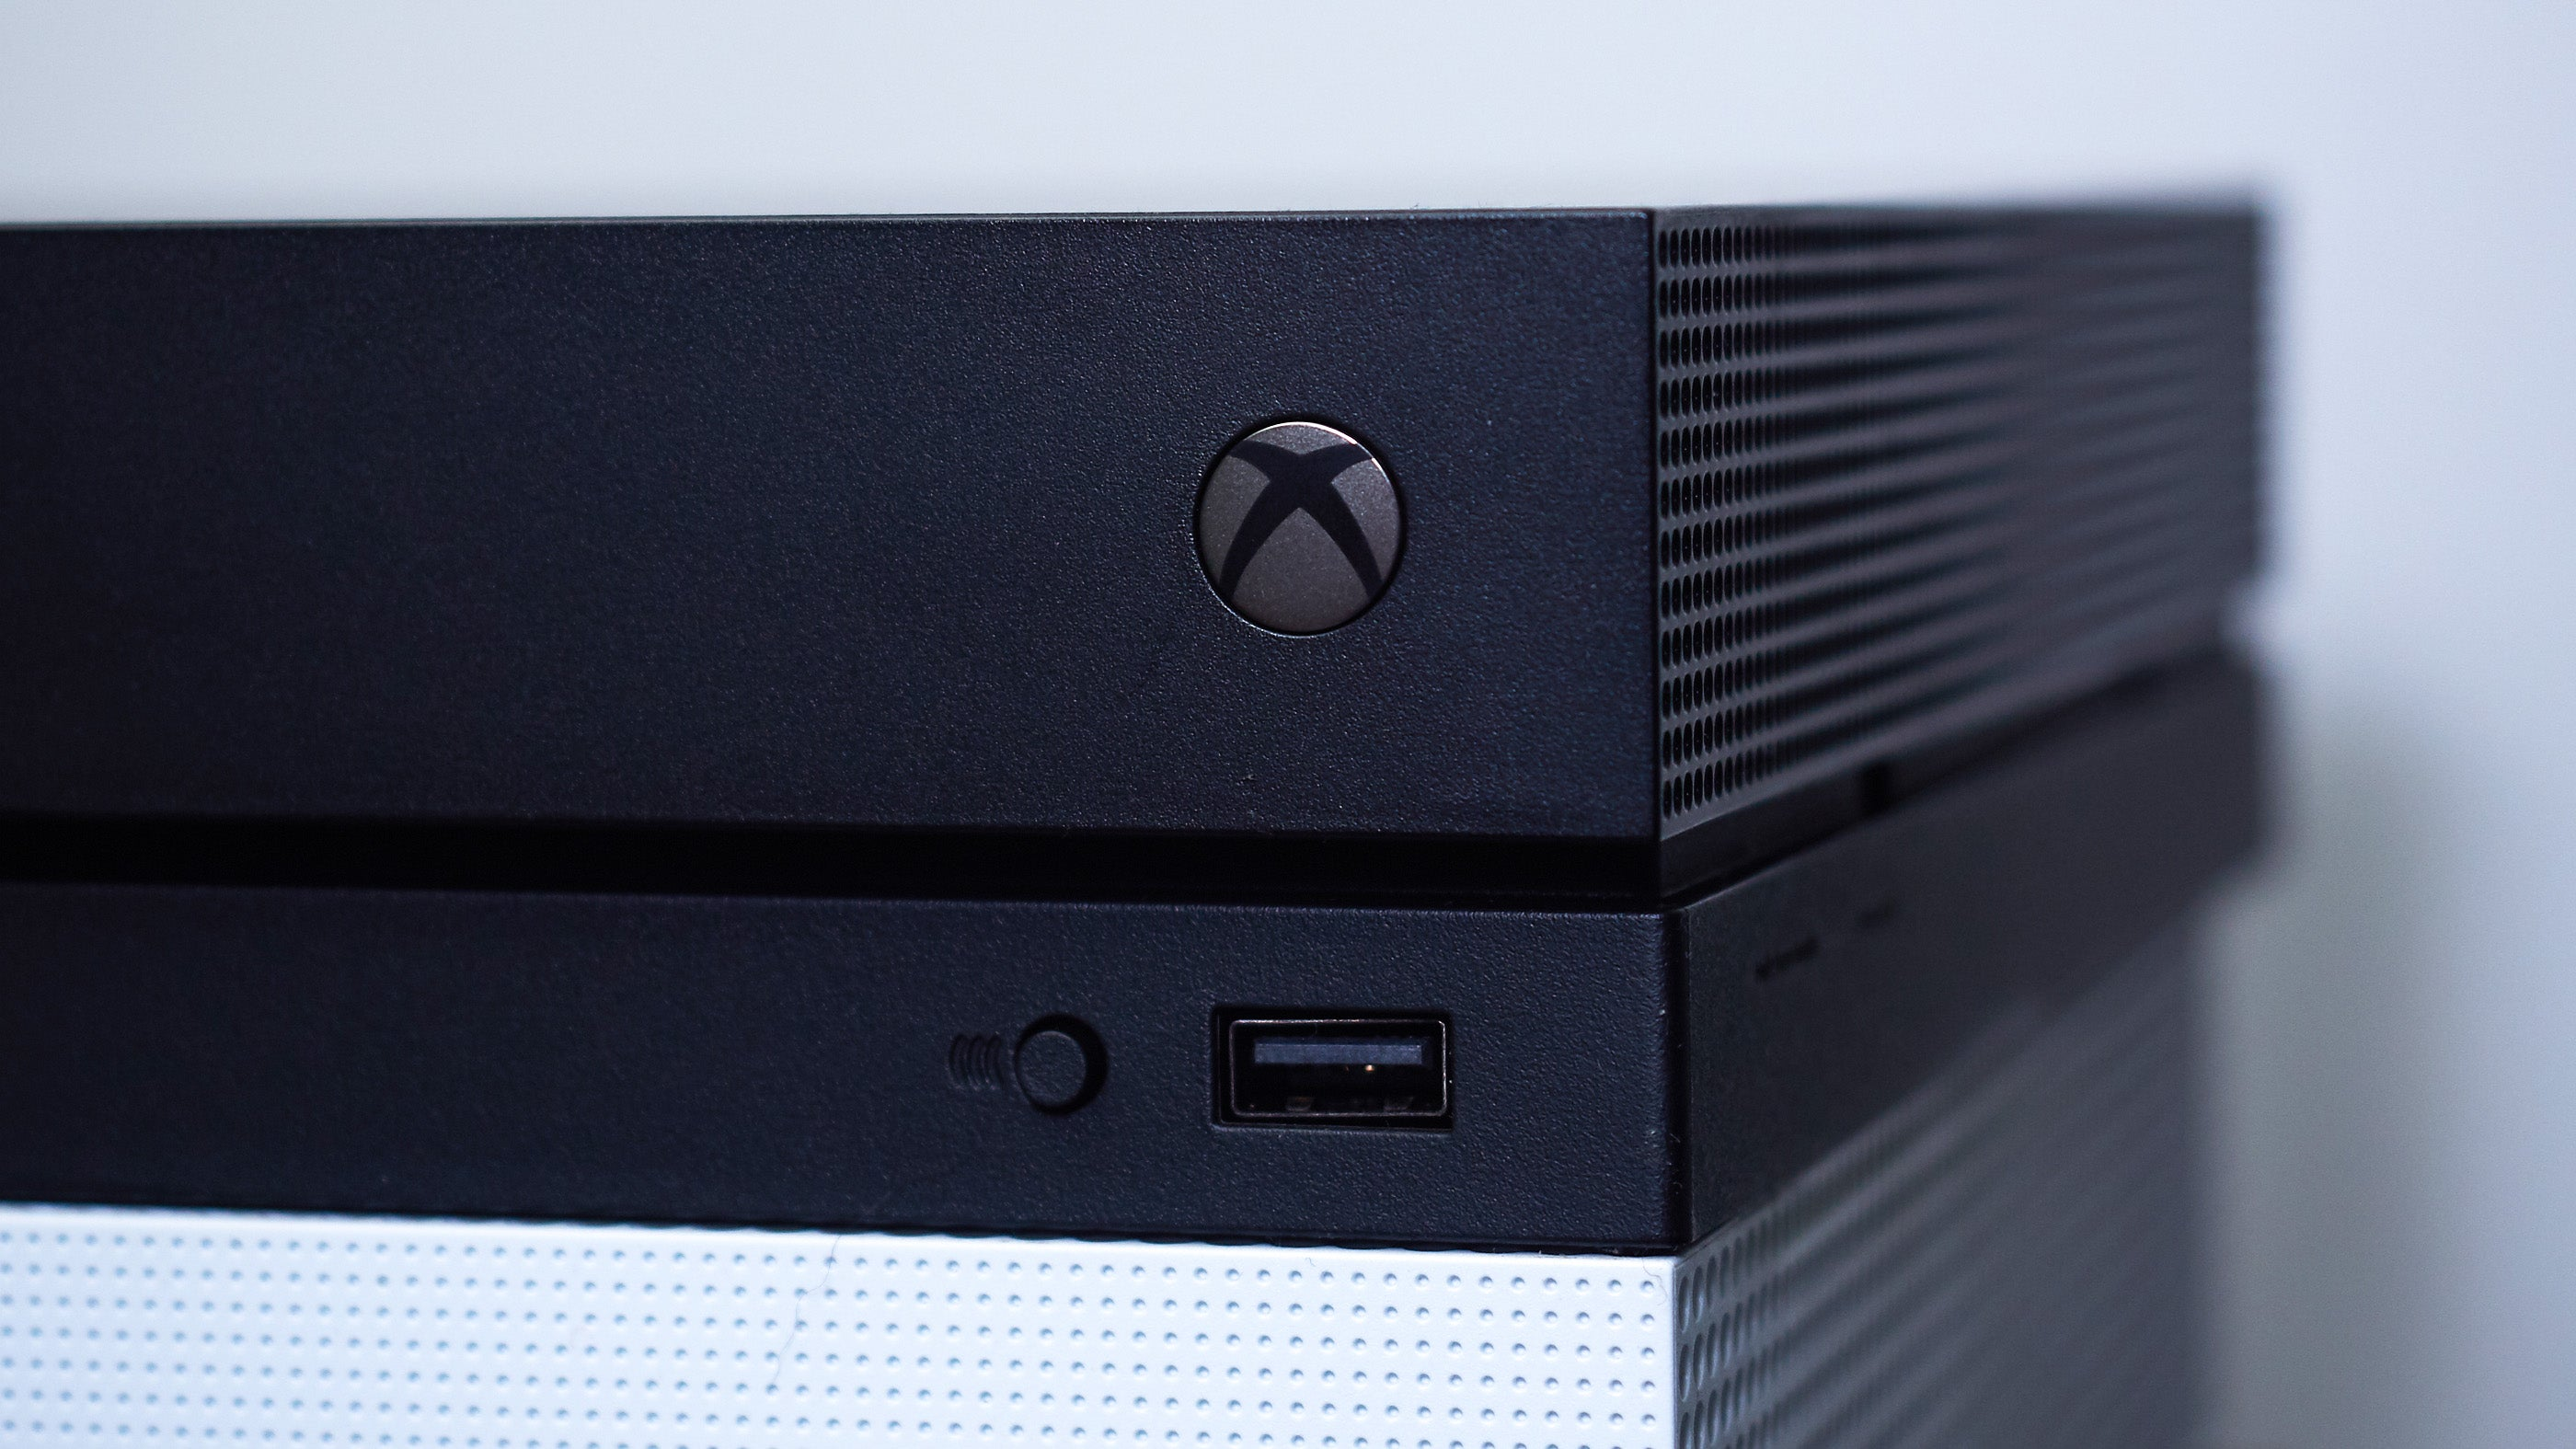 Kodi Lands On The Xbox One, Making It The Ultimate Set-Top Box